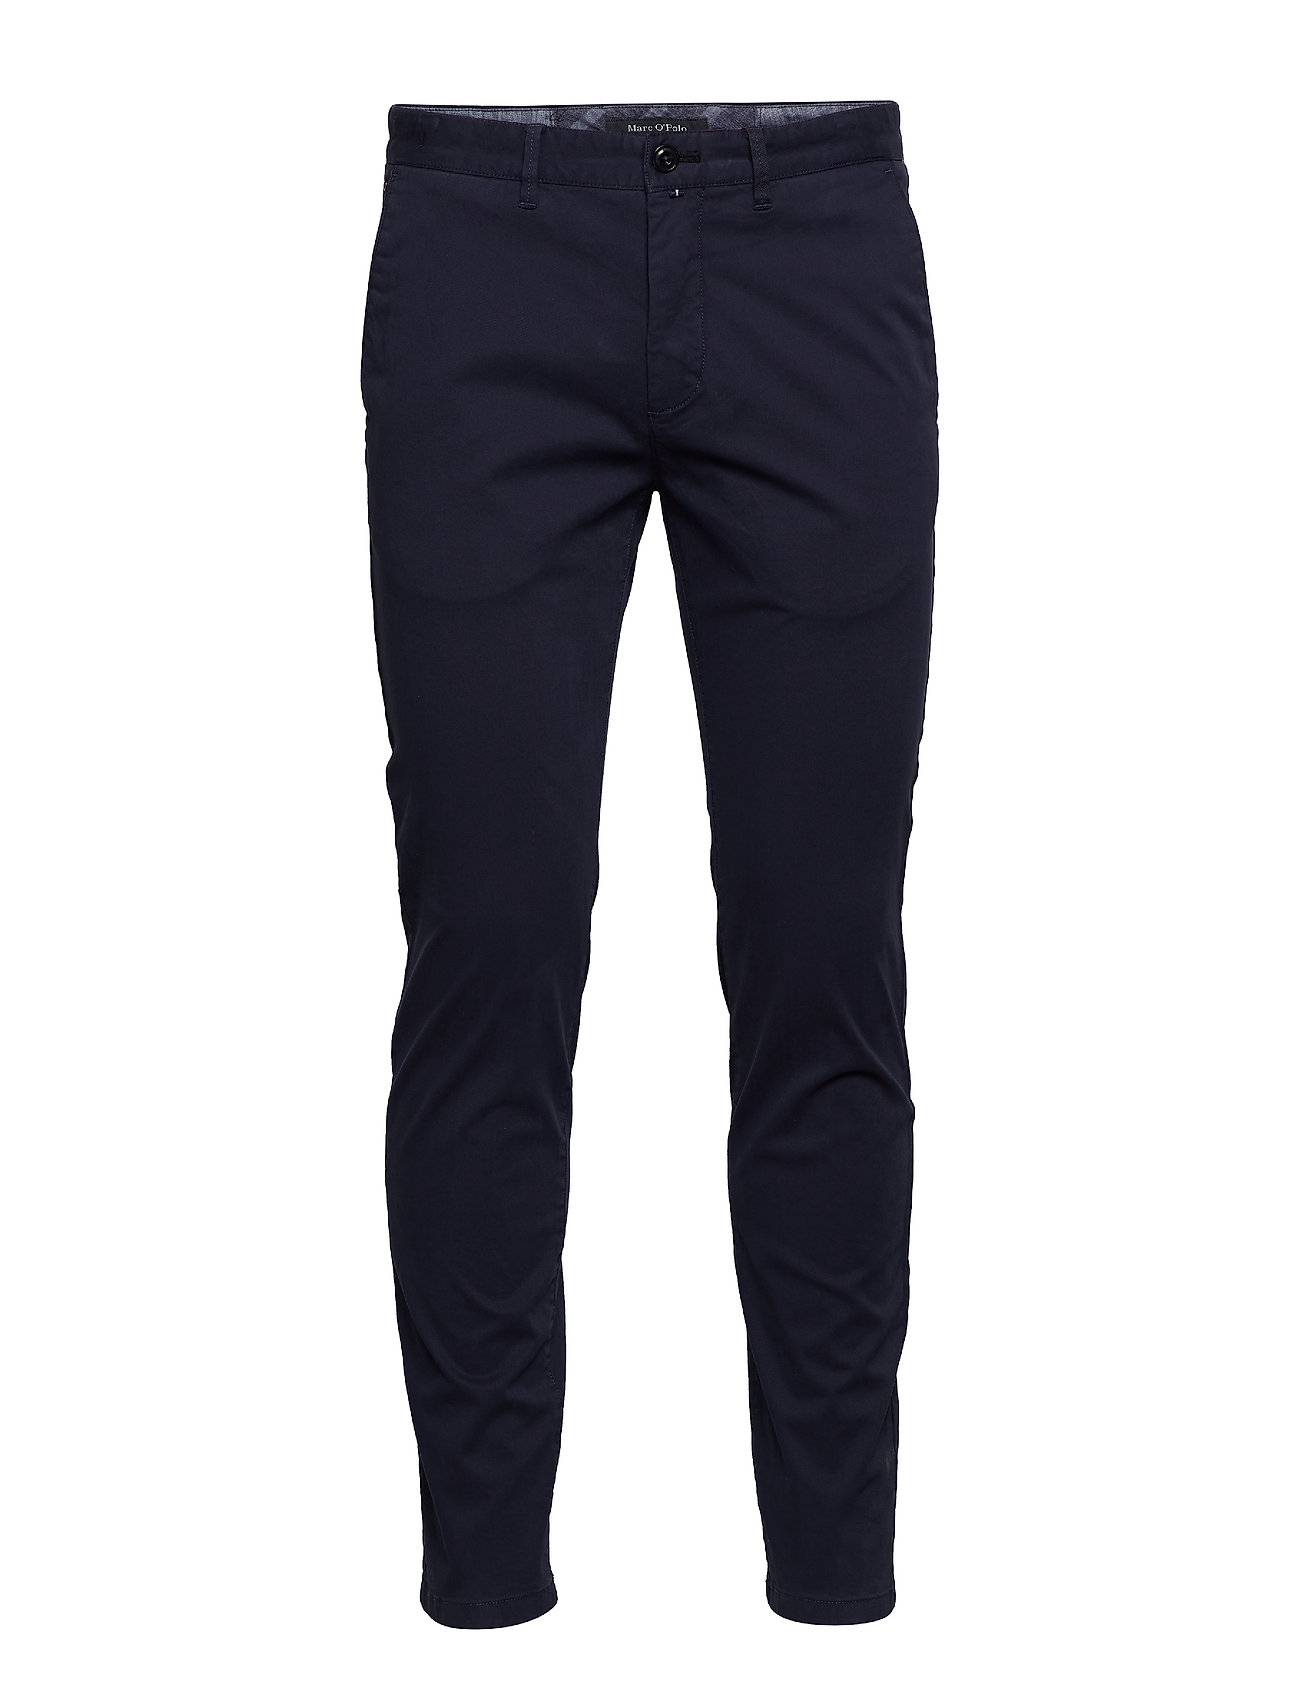 Marc O'Polo Chino Pants - BLUE BIRD